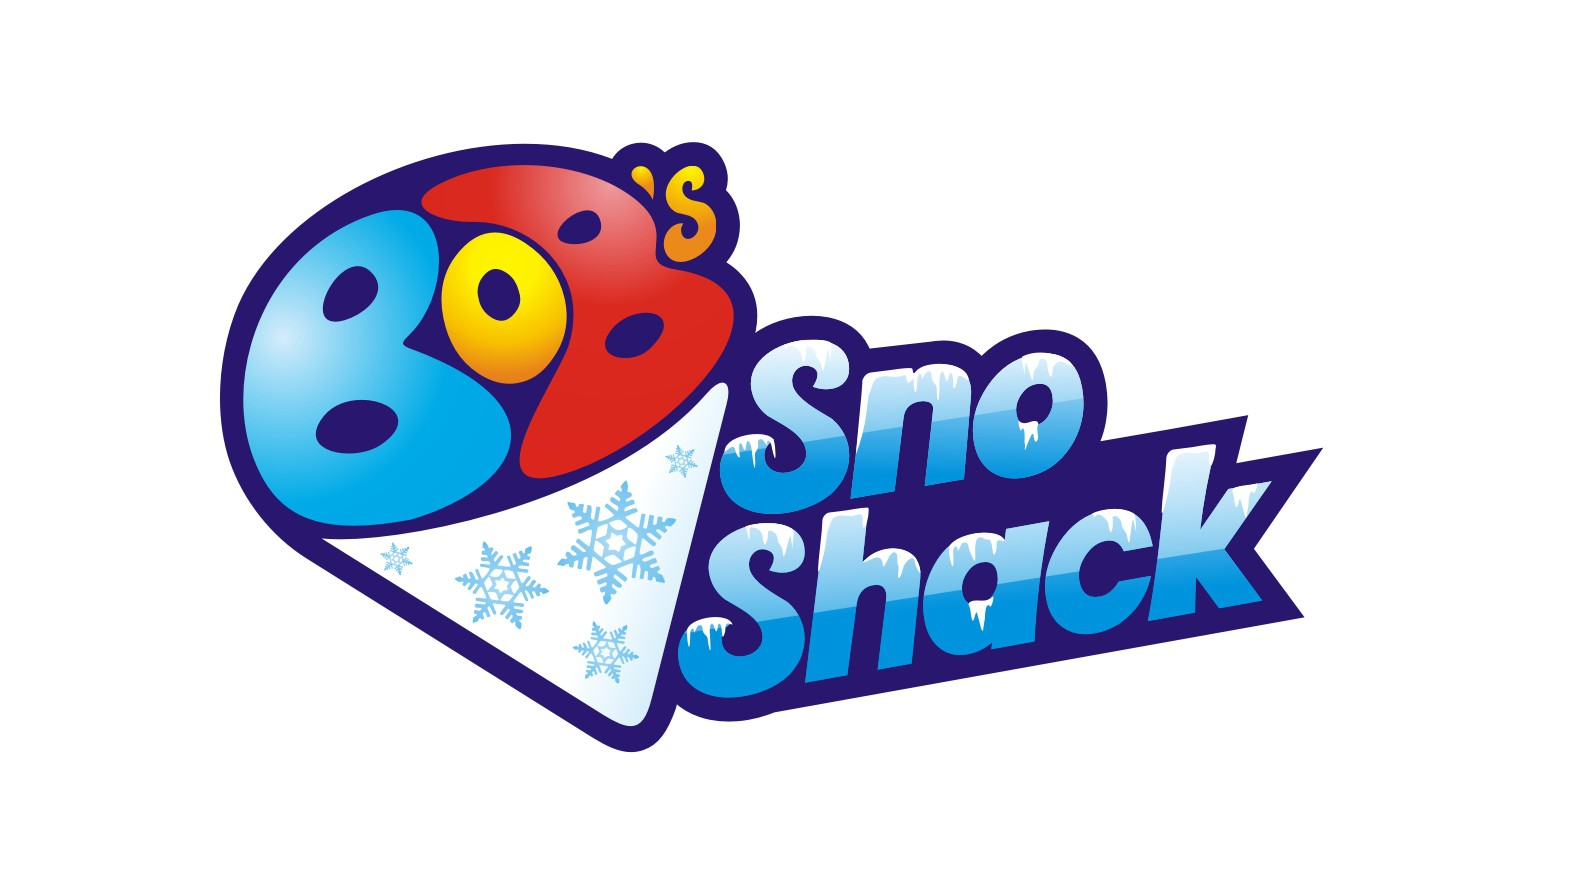 Create a new logo for Bob's Sno Shack